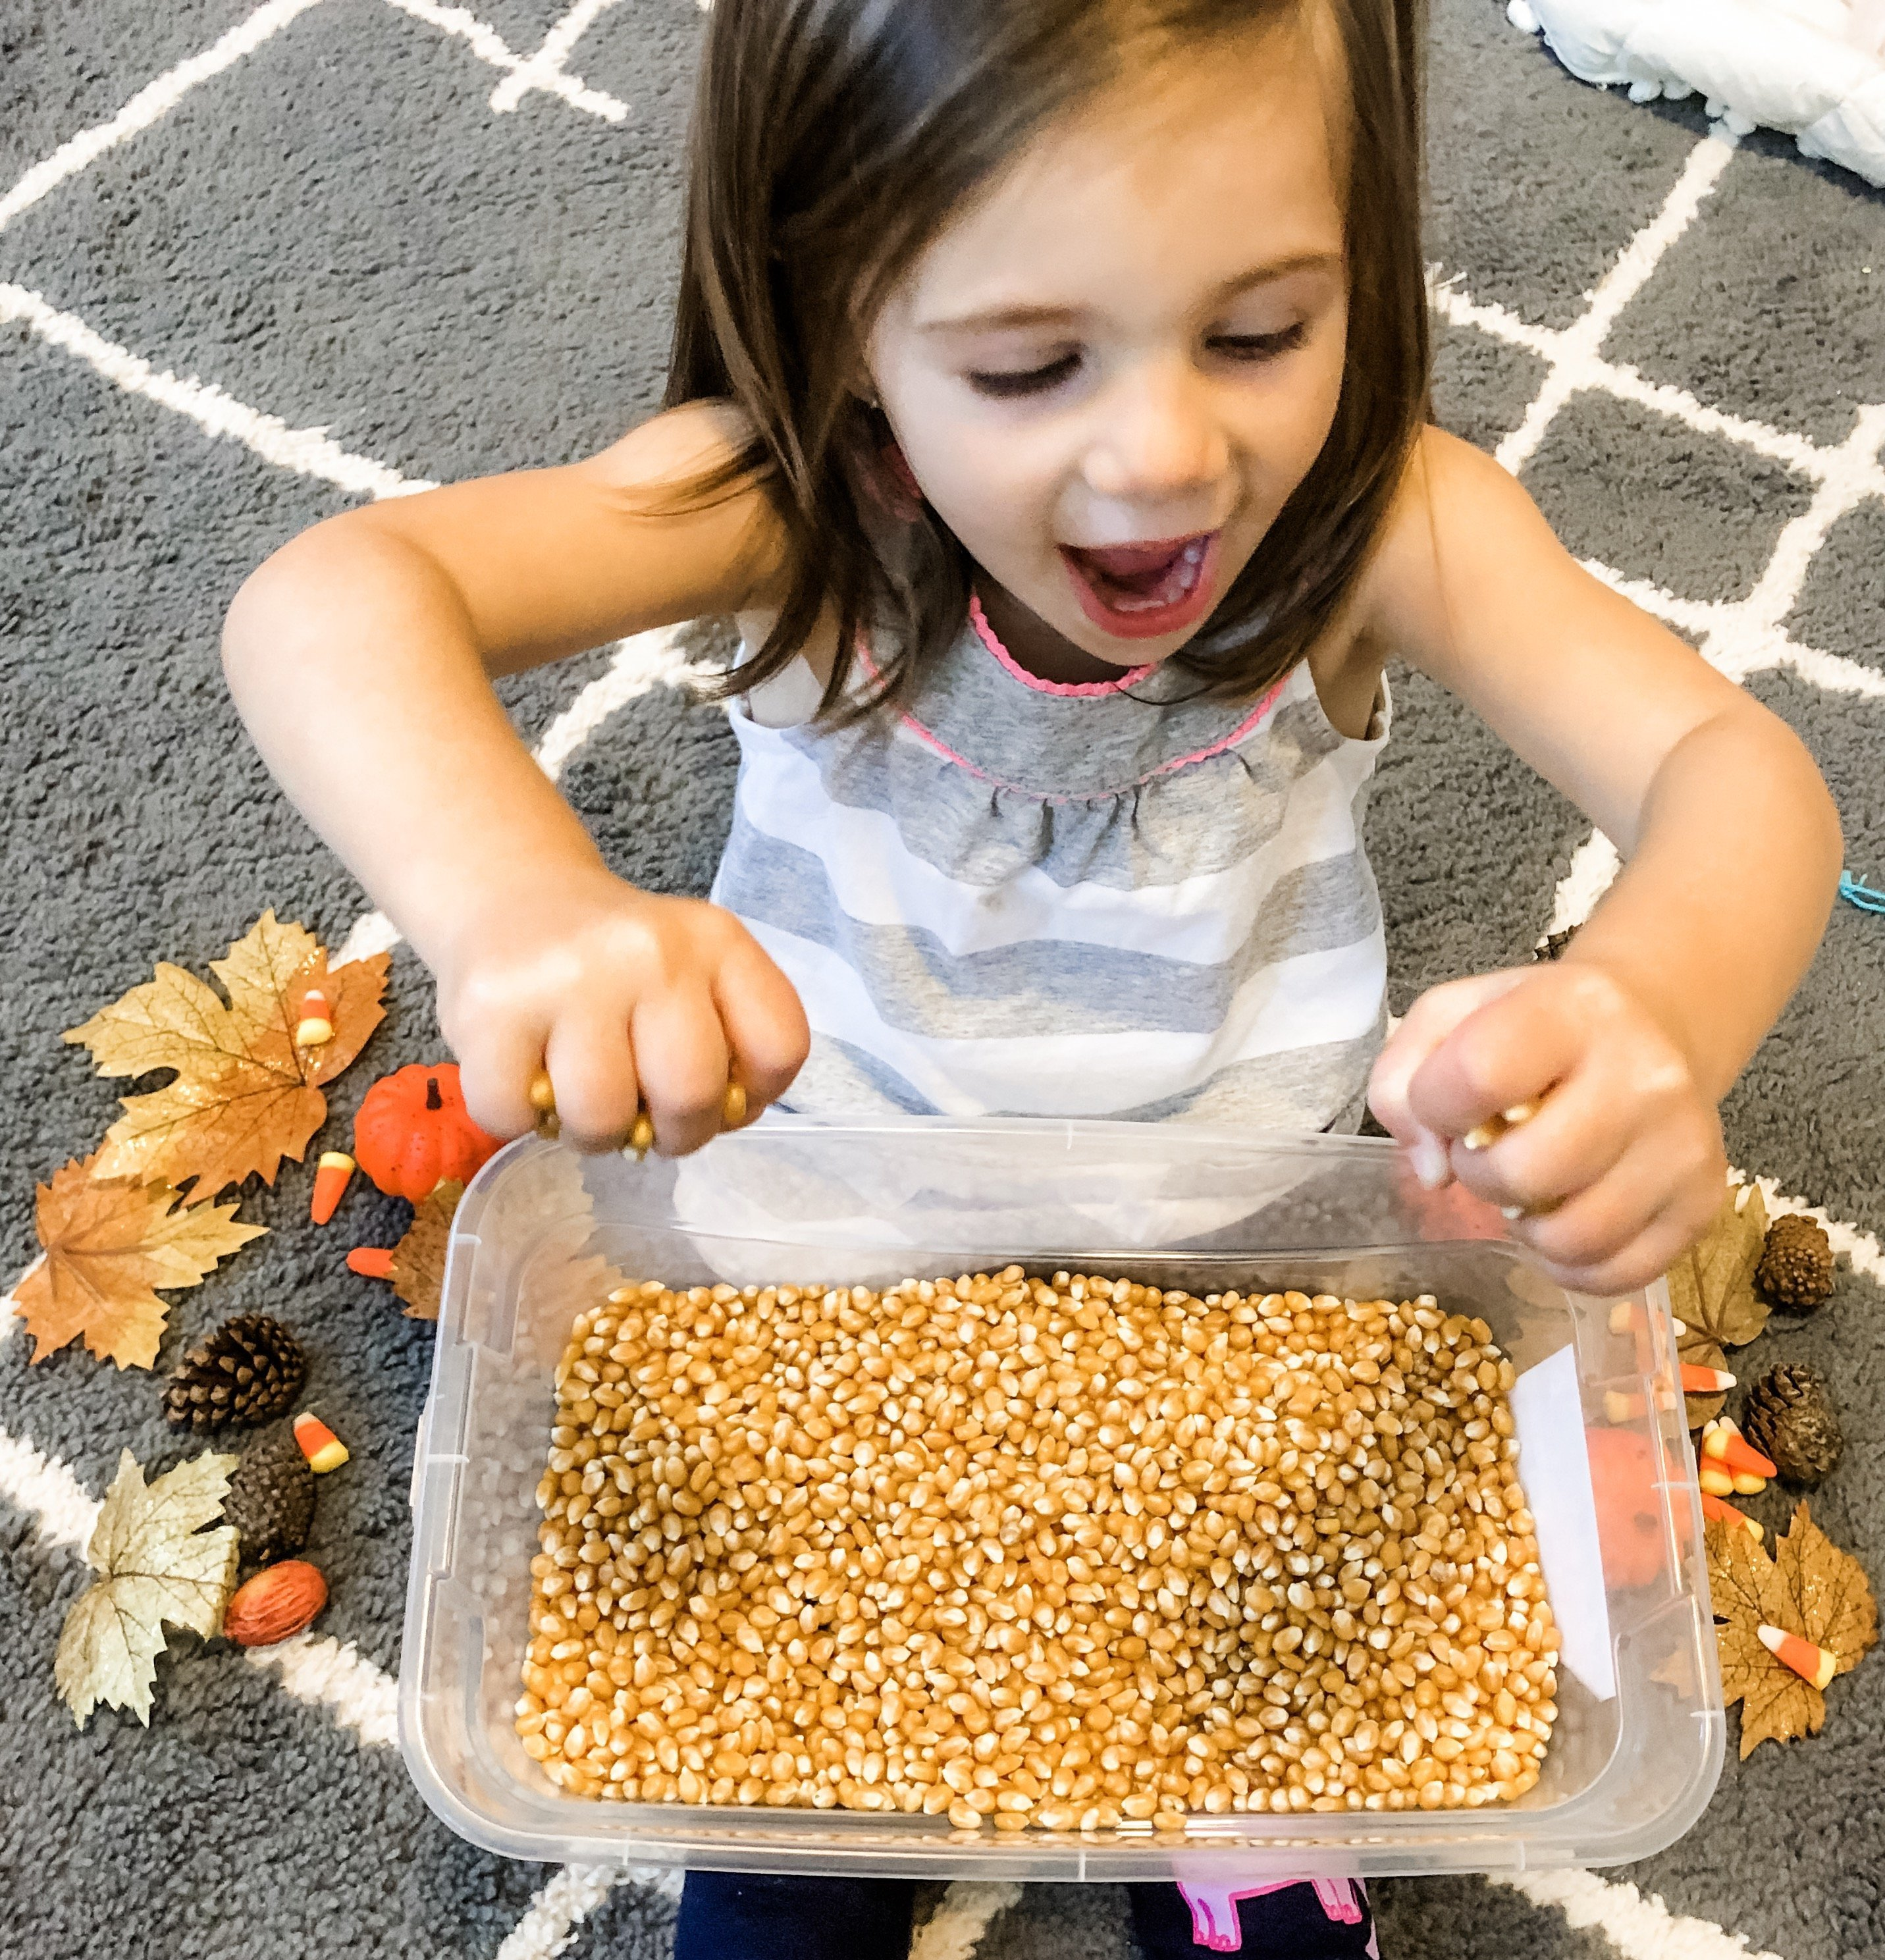 Sensory bins are a great educational & play experience for toddlers. Make one for your child with a fall theme using leaves, pumpkins, corn, and pinecones.